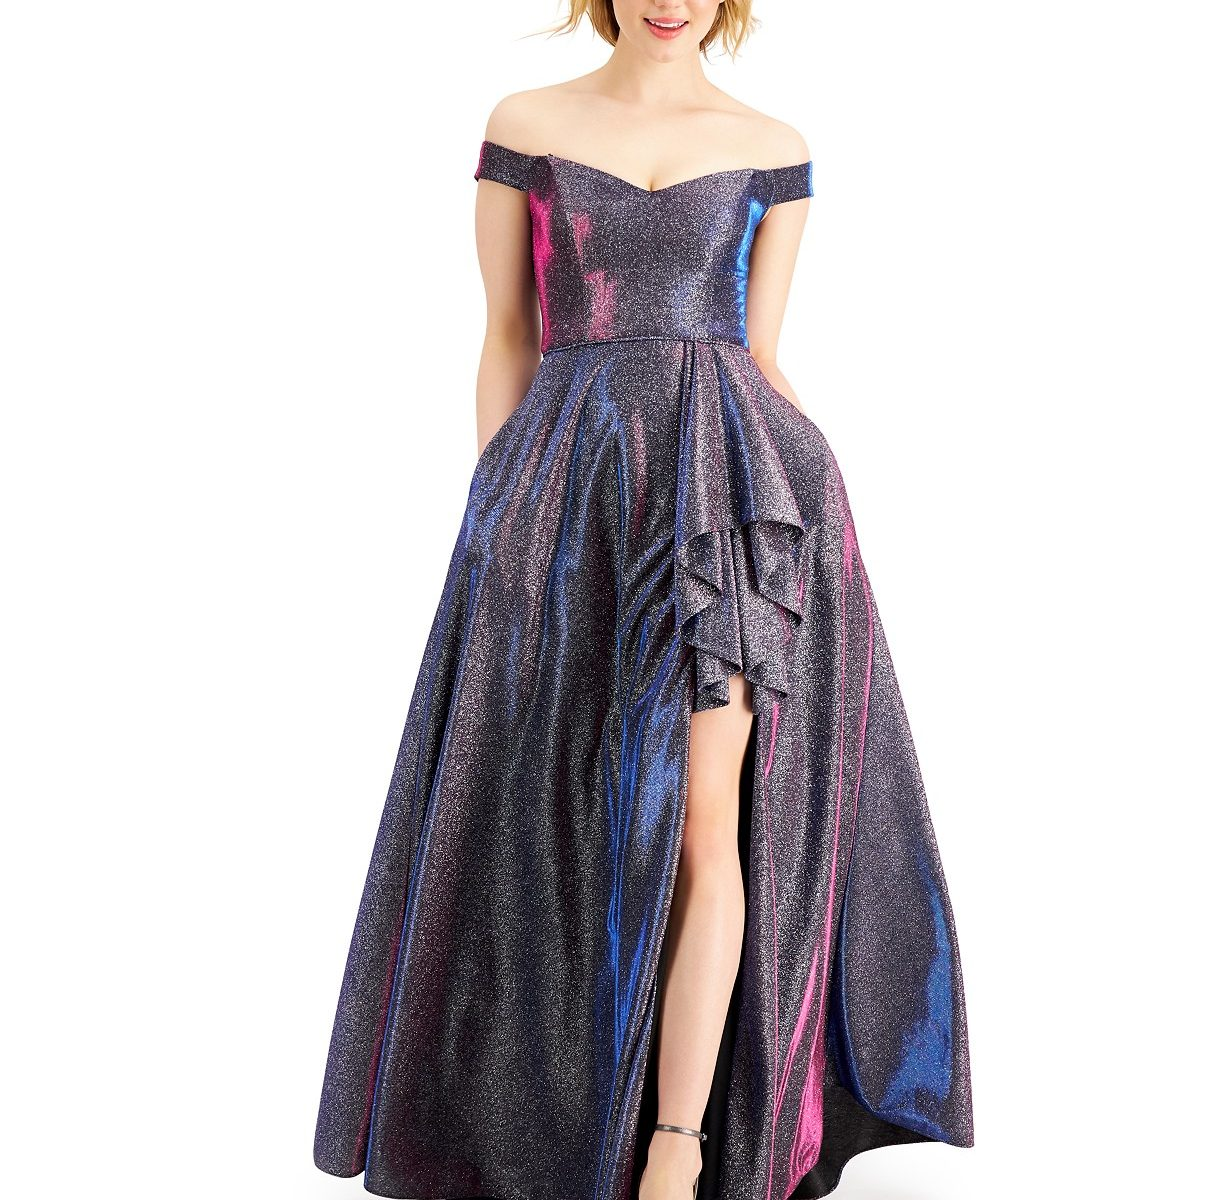 Latest Cheap Macy's Long Prom Dresses 2021 in the US Online